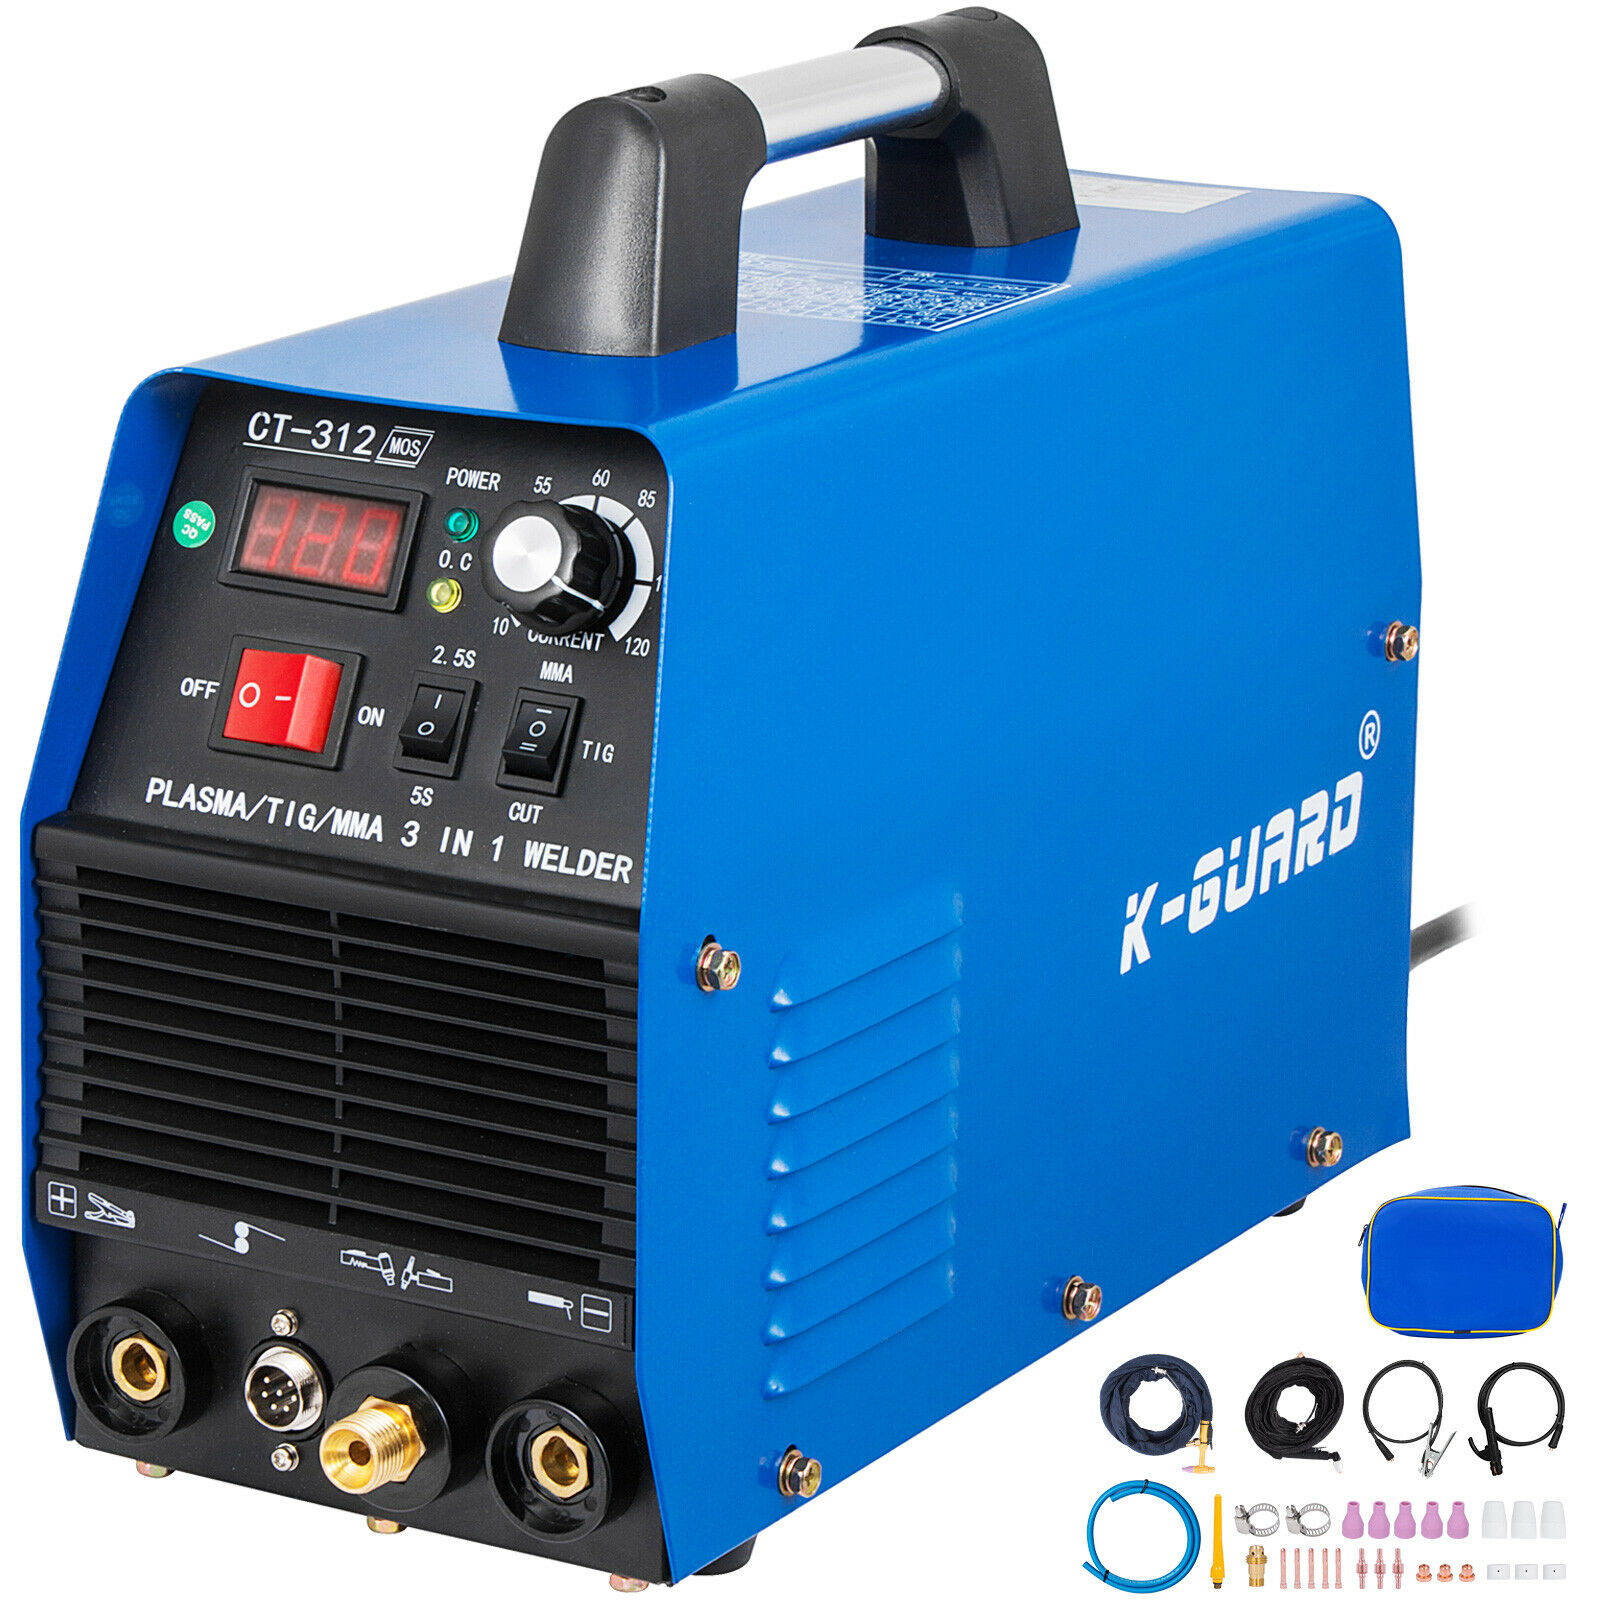 CT312 3IN1 Welding Machine Digital TIG/MMA/ Plasma Cutter Welder & Accessories